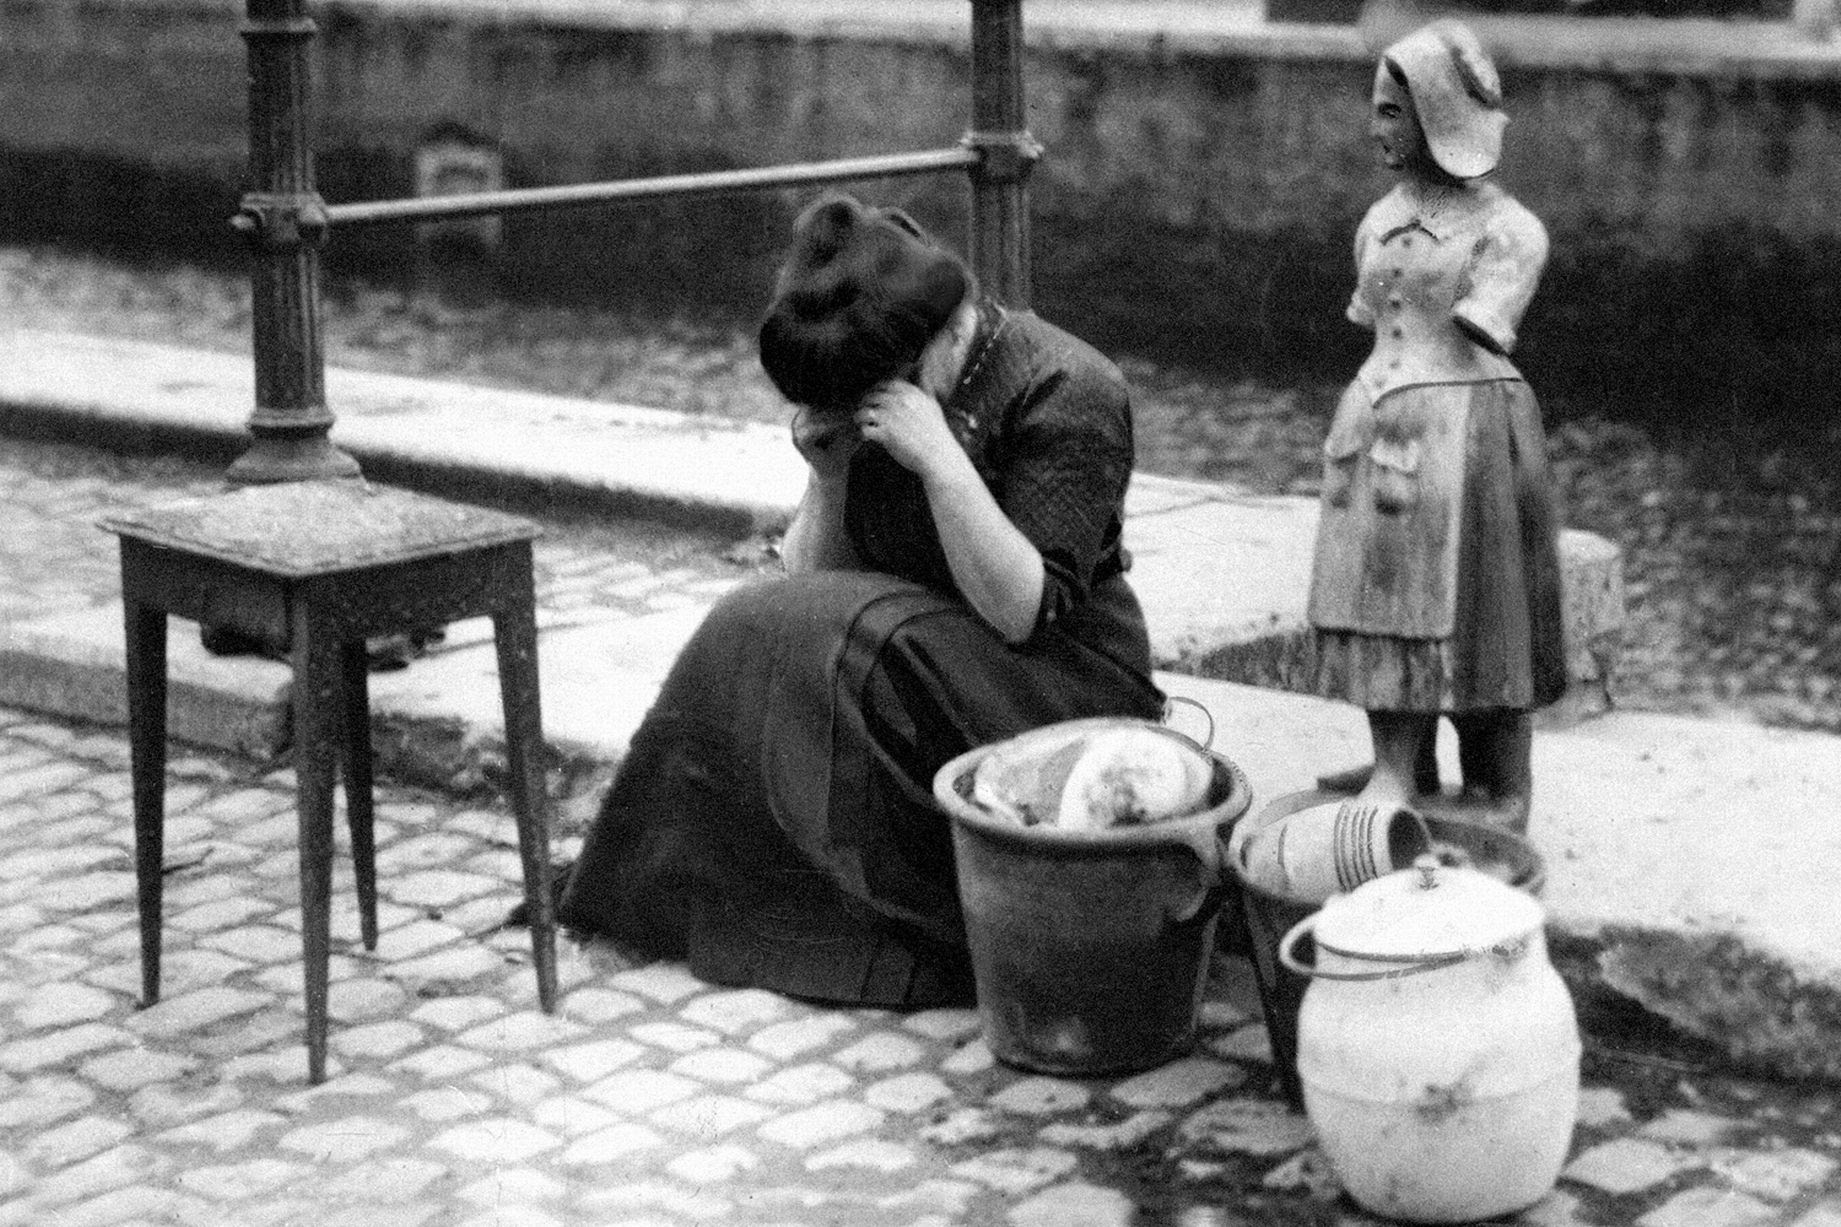 A woman weeps at the roadside beside a table some pots and pans and a heavy stone statue her worldly treasures